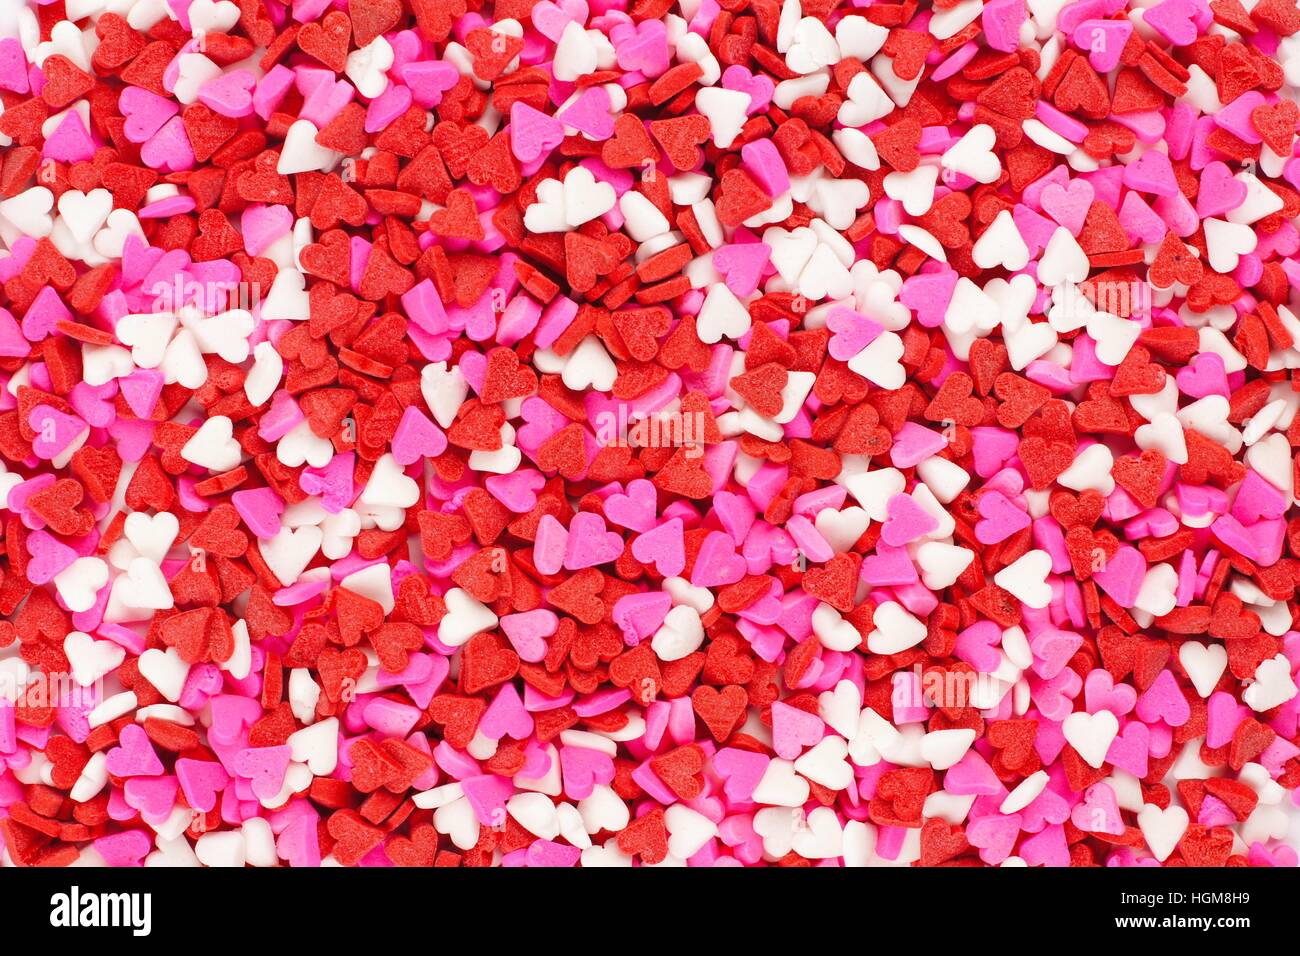 Valentines Day Candy Heart Sprinkles Background Stock Photo